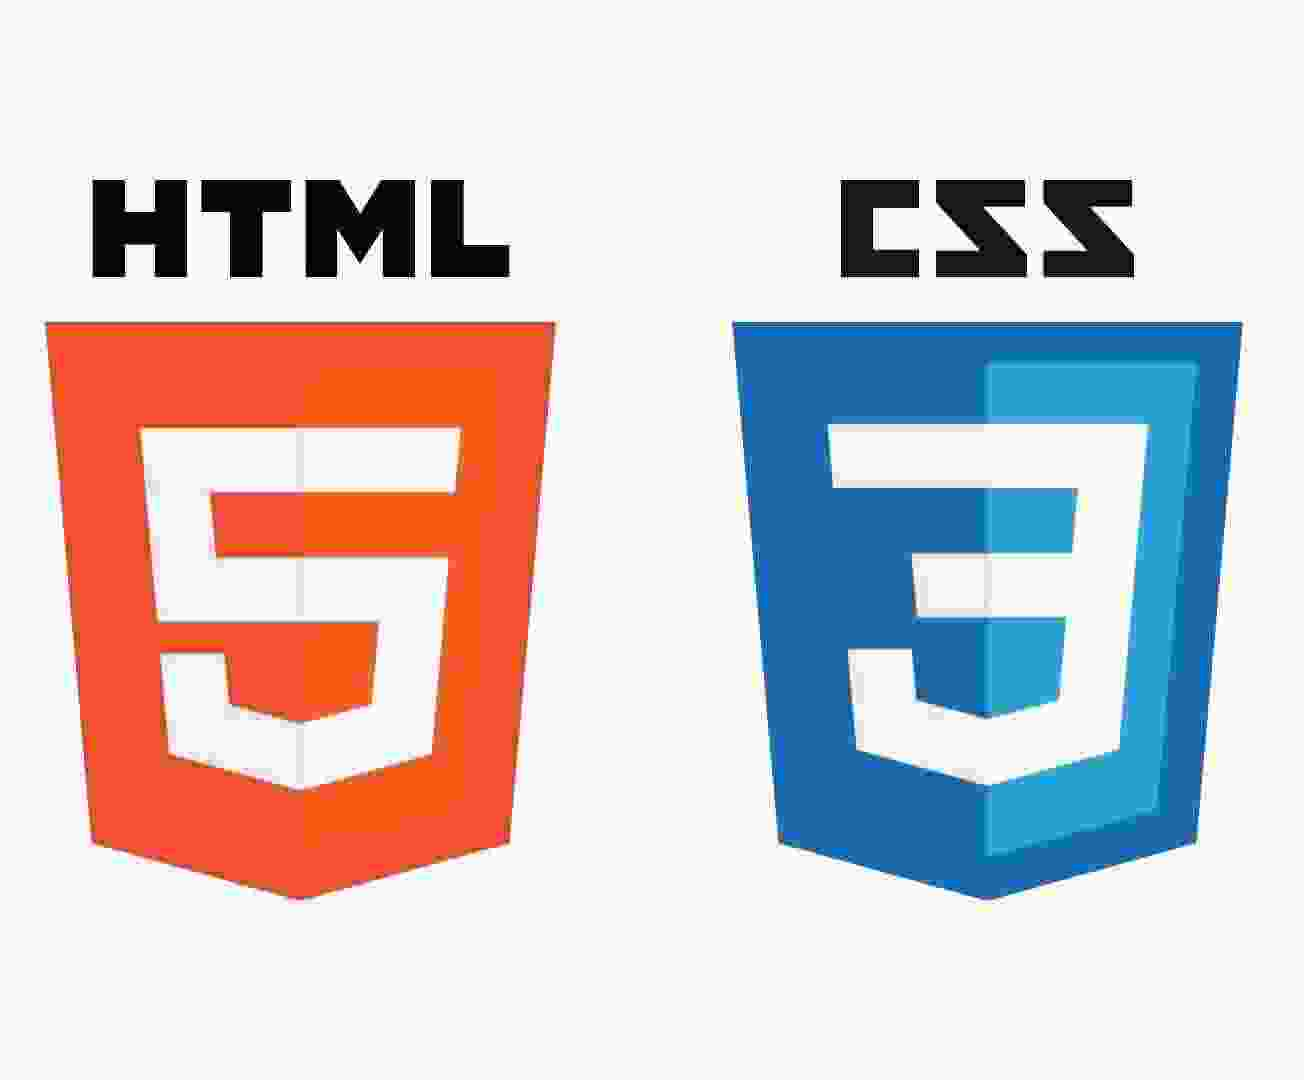 Curso básico html css - Reinicia Agencia de Marketing Digital